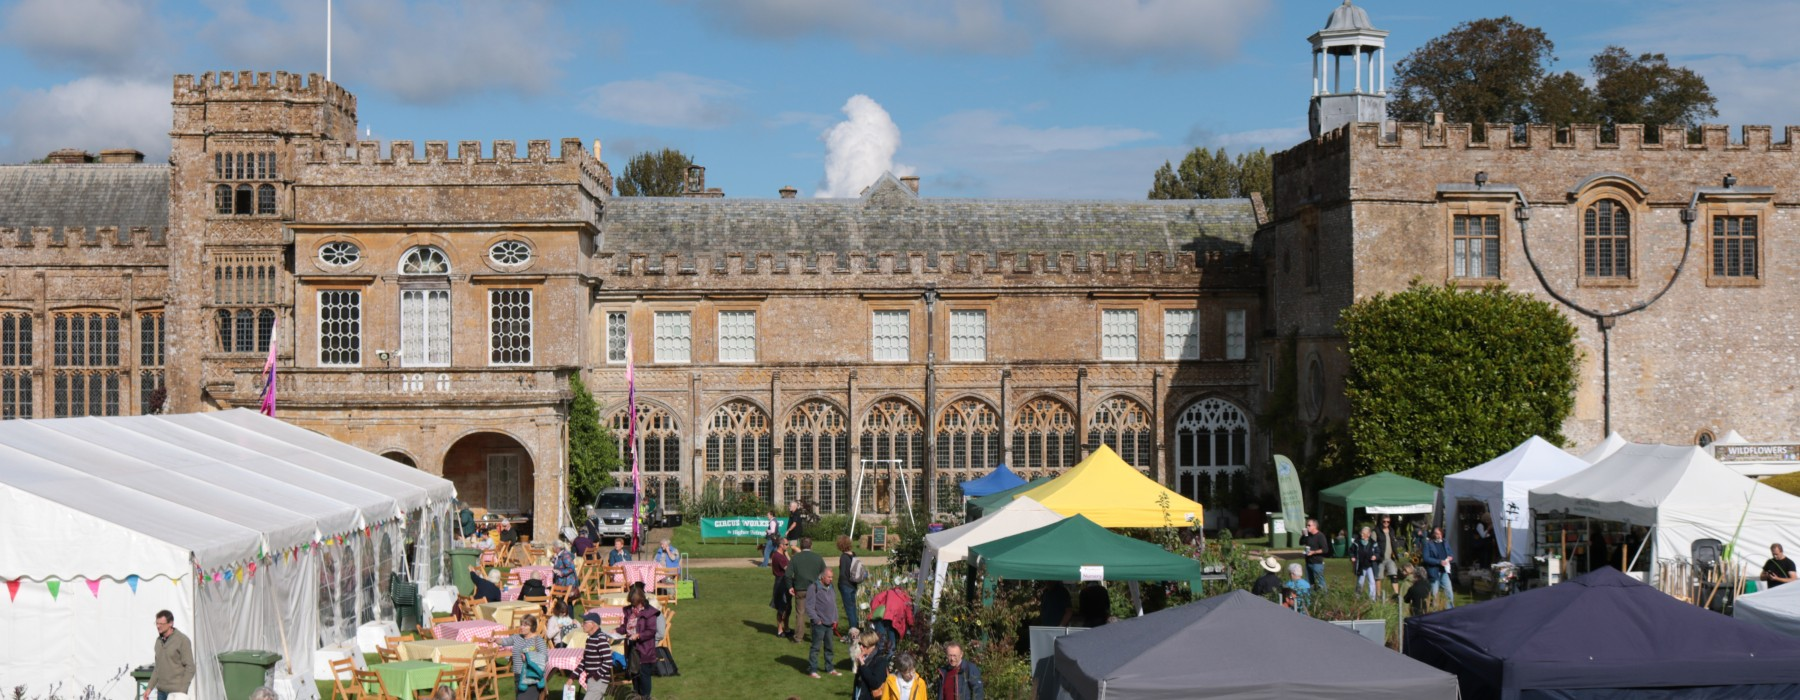 Toby's Garden Fest at Forde Abbey